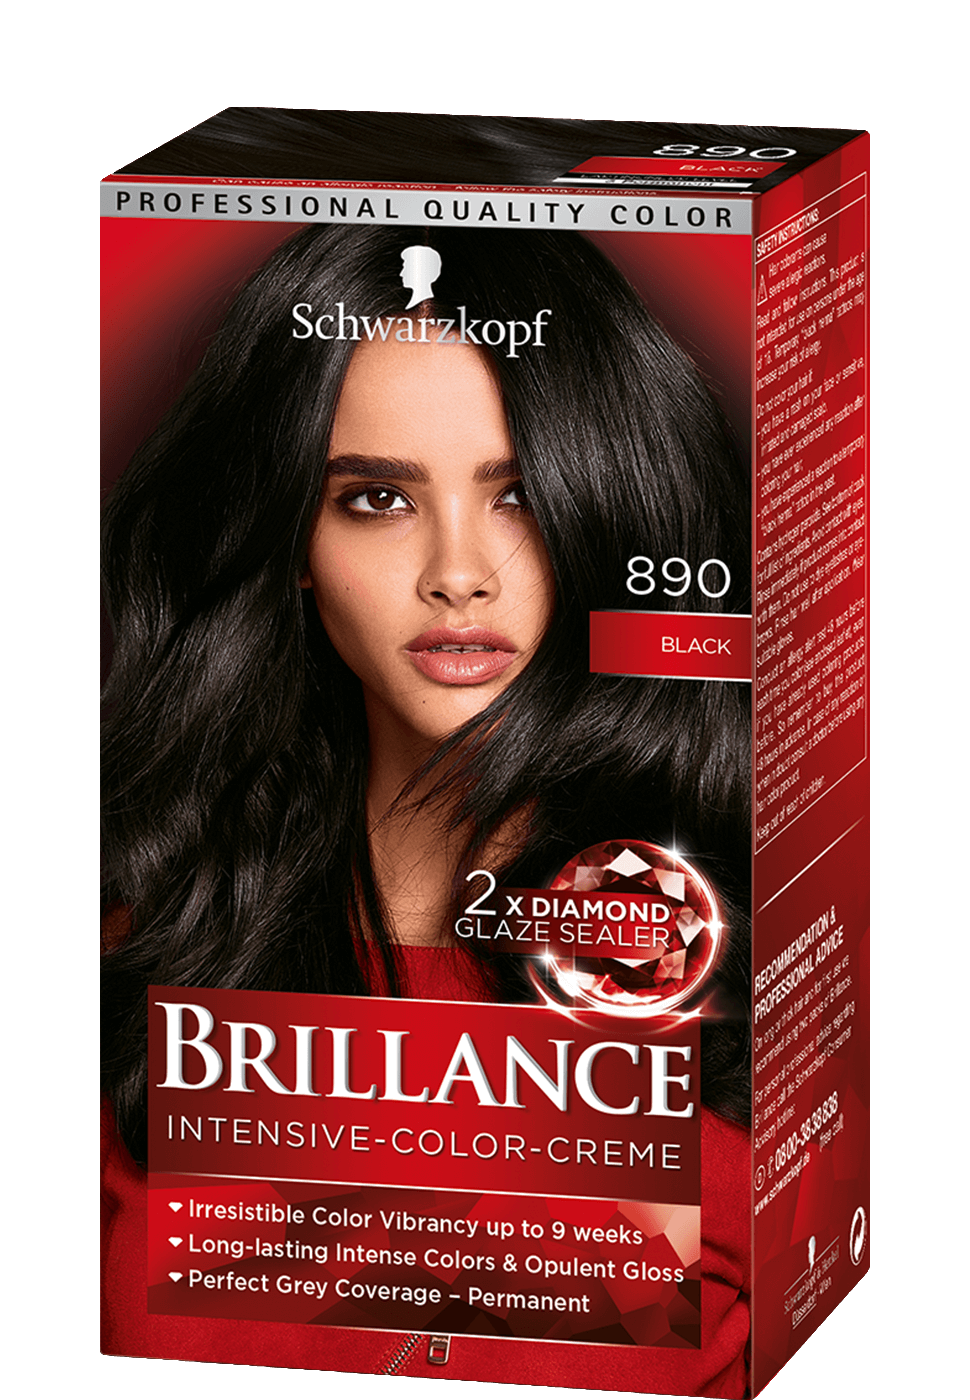 brillance_com_intensive_color_creme_890_black_970x1400